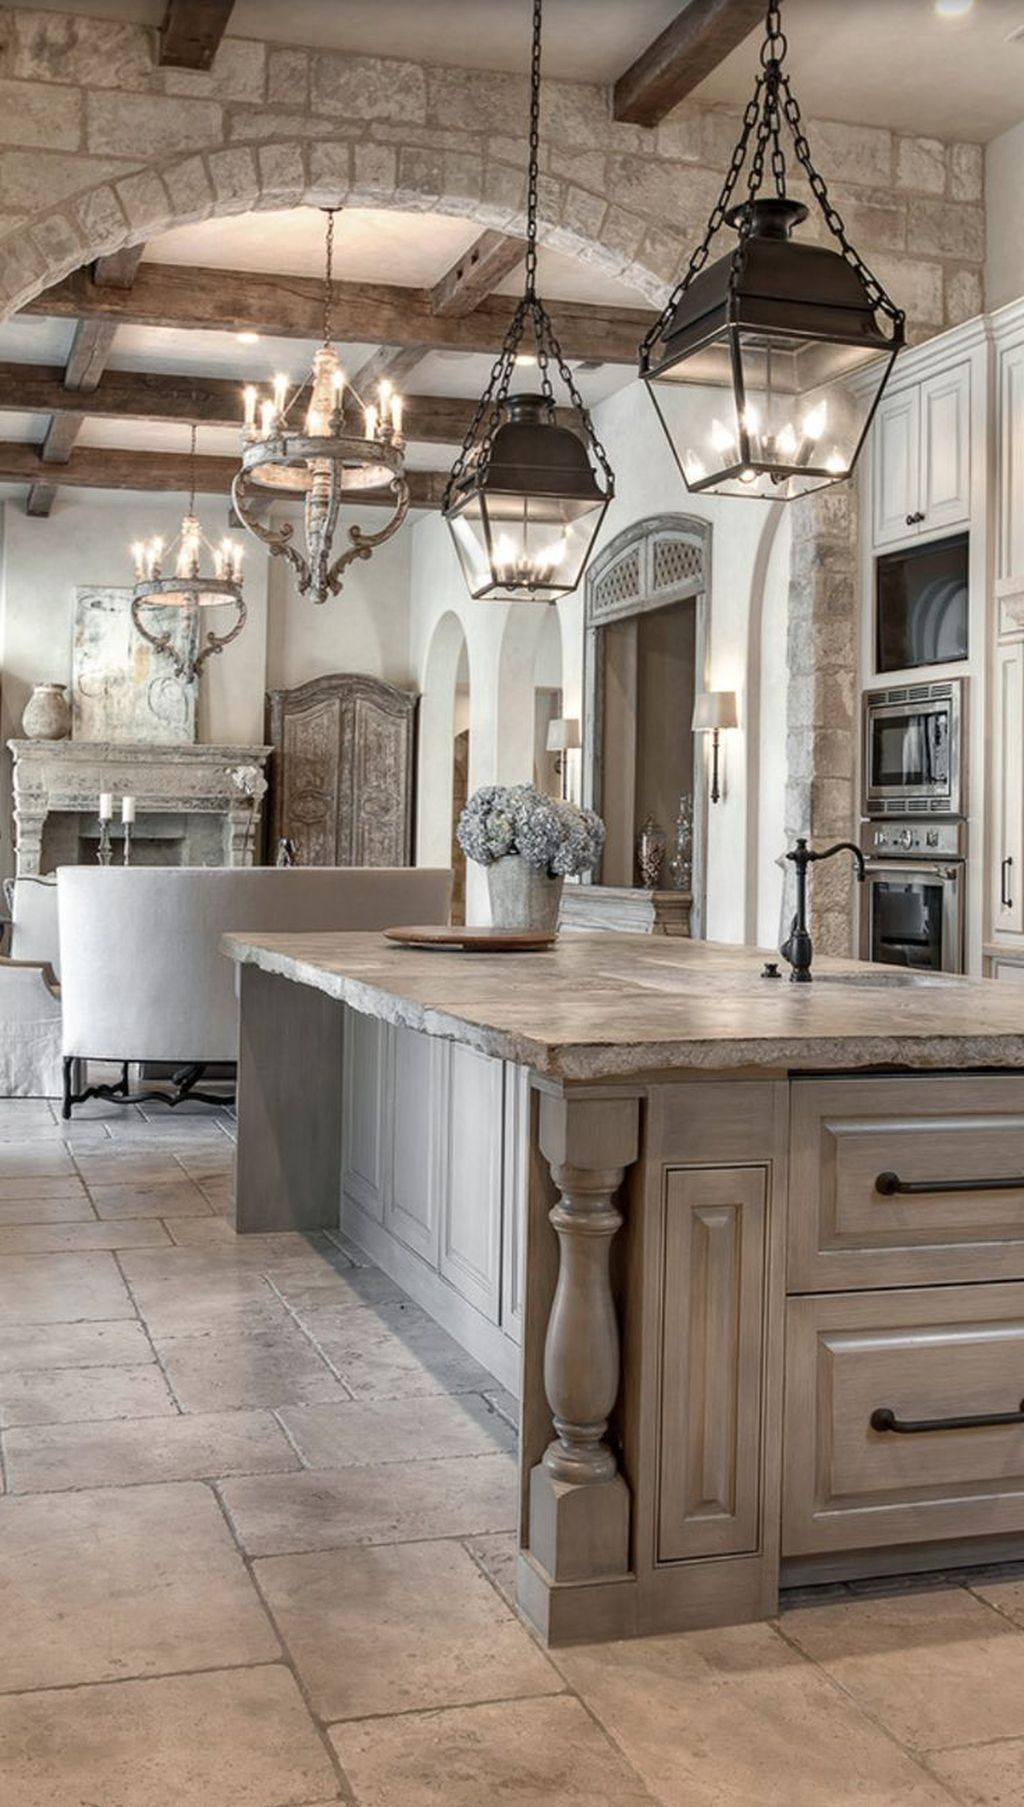 35 elegant kitchen design inspiration elegant kitchens kitchen lighting fixtures great best ideas about french country lighting the unfinished edge of this counter distressed grey cabinetry pendant lantern lighting 13 arubaitofo Choice Image